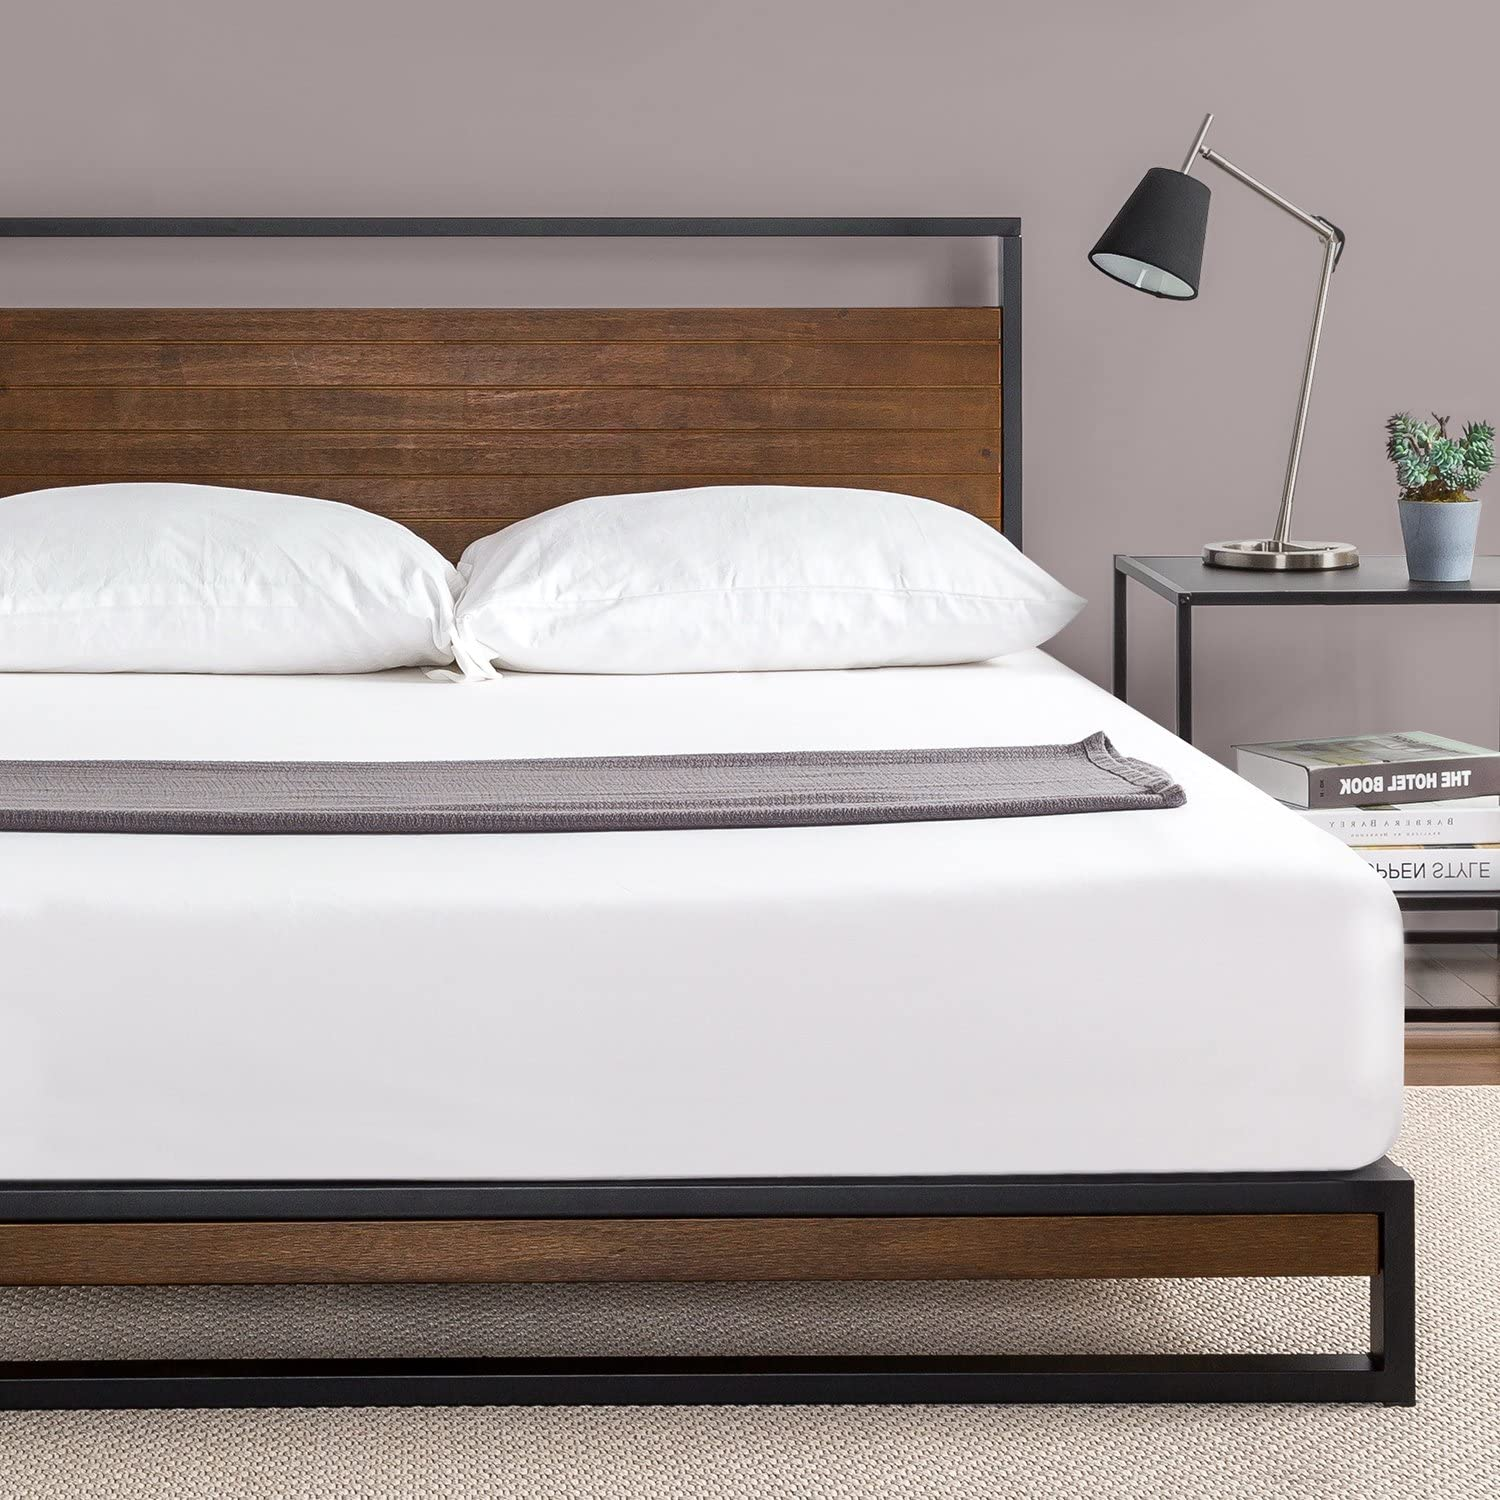 Zinus Suzanne Metal and Wood Platform Bed with Headboard Box Spring Optional Wood Slat Support, Twin